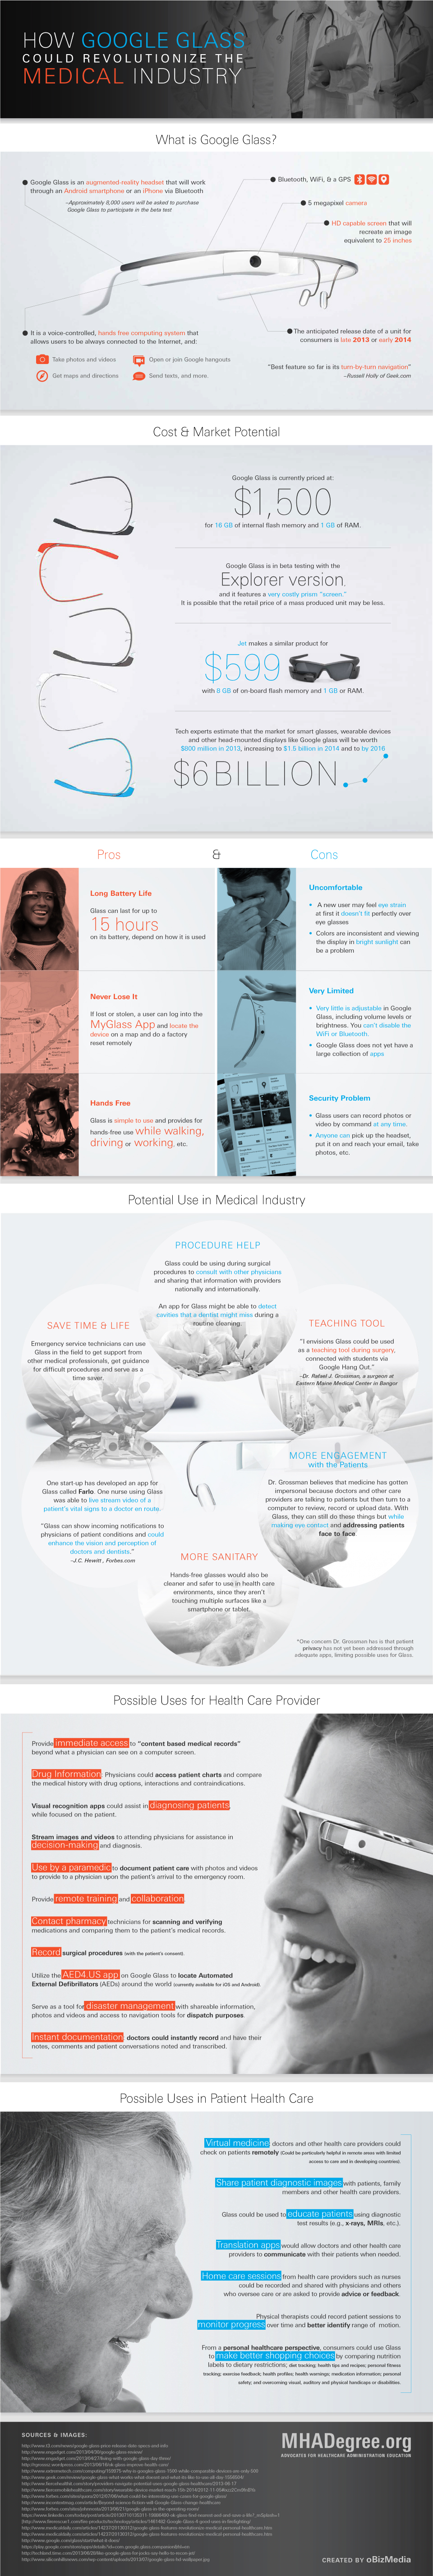 google glass medical industry